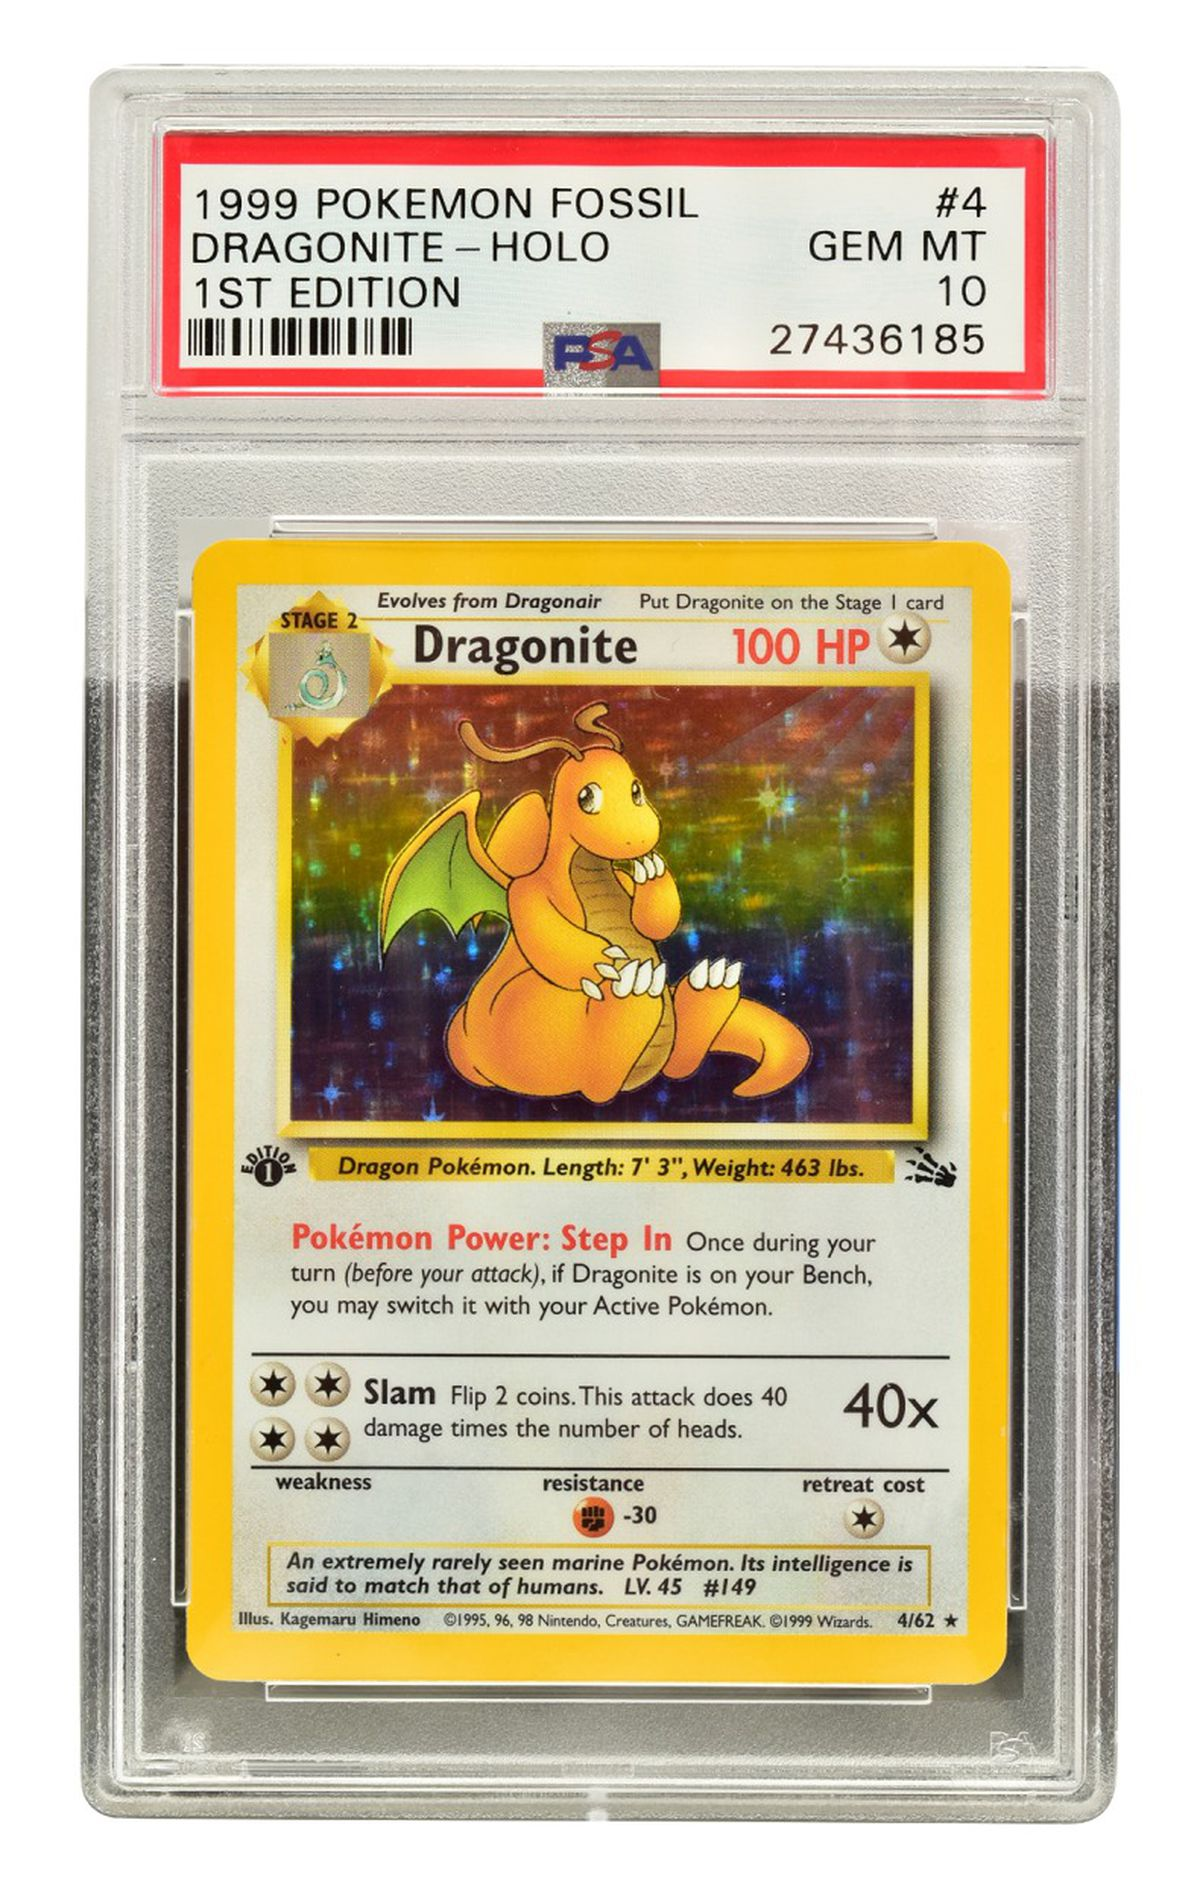 A 1st edition Fossil Dragonite Holo, PSA Gem Mint 10, estimated to sell for £3,000-£5,000.